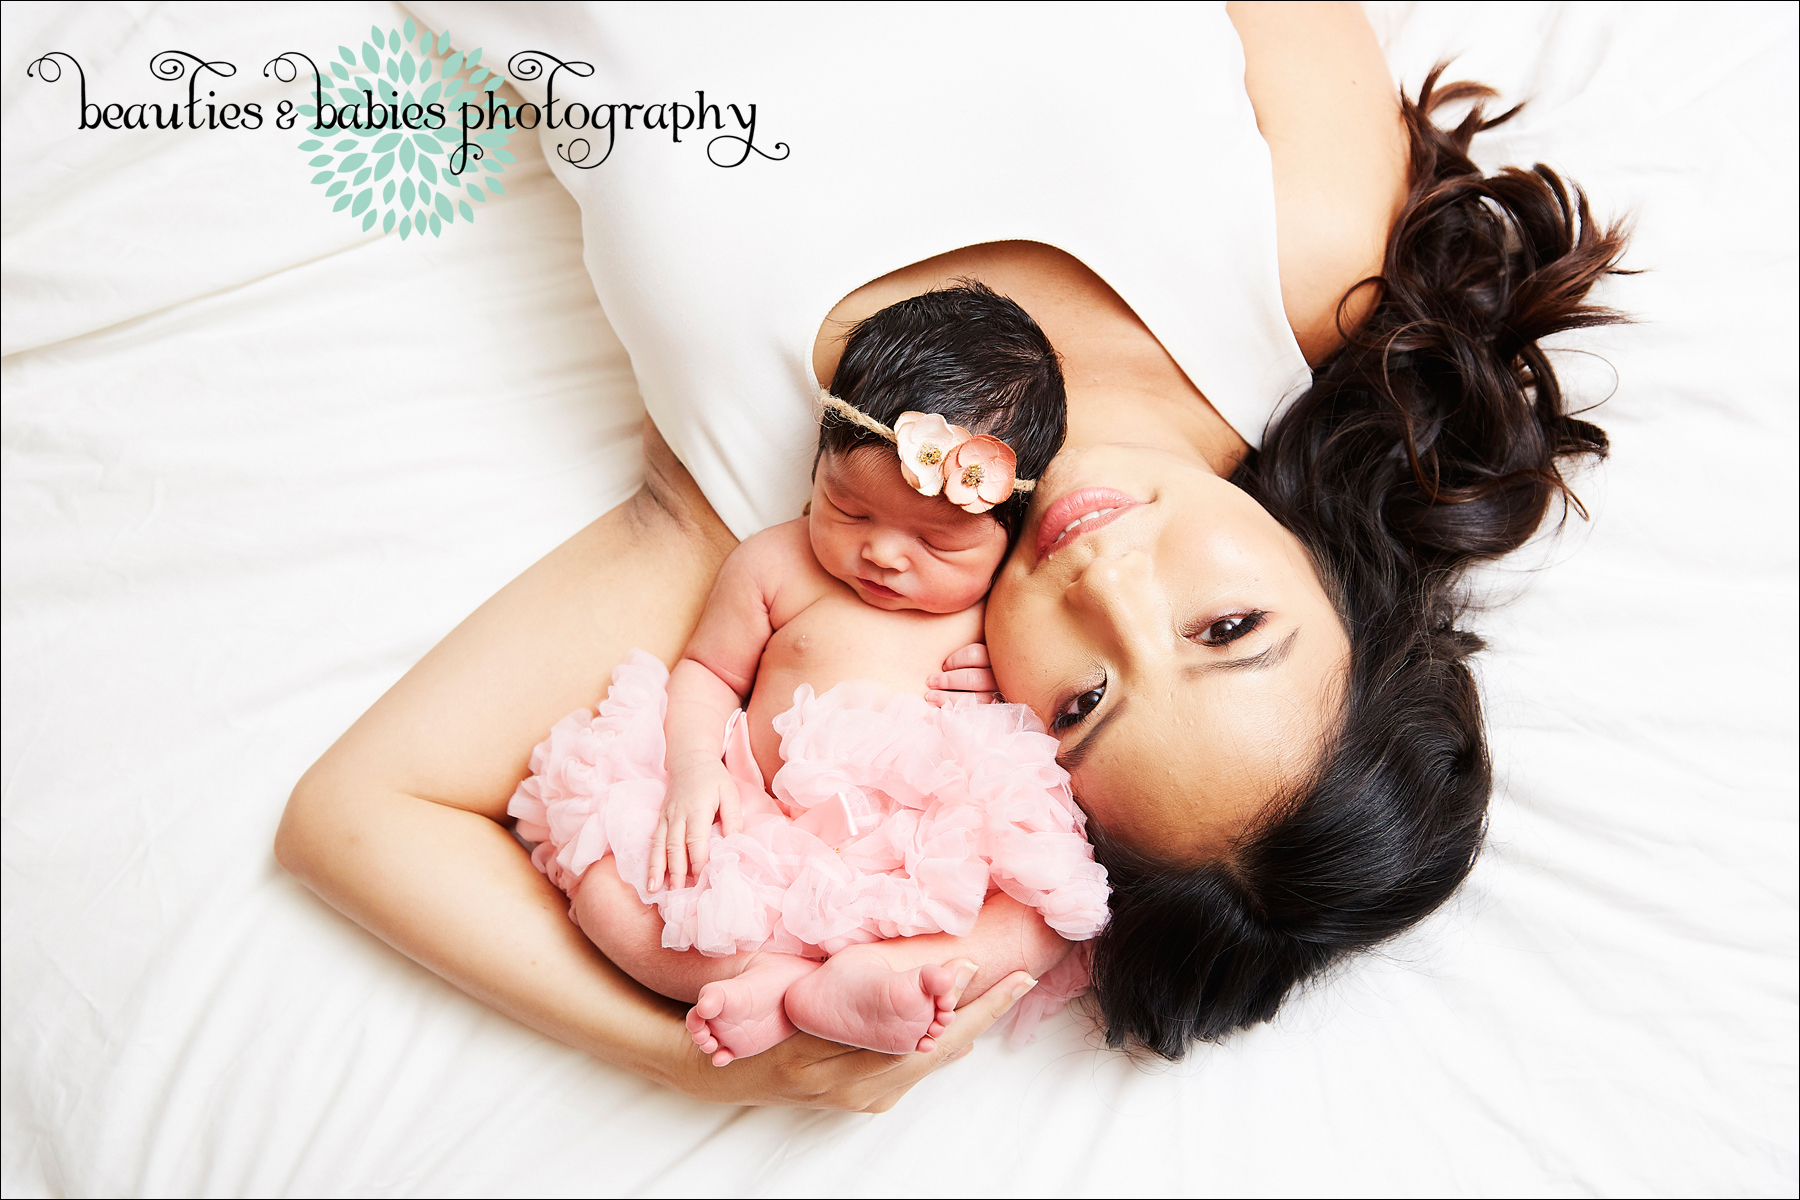 At home newborn and family photography Los Angeles photographer